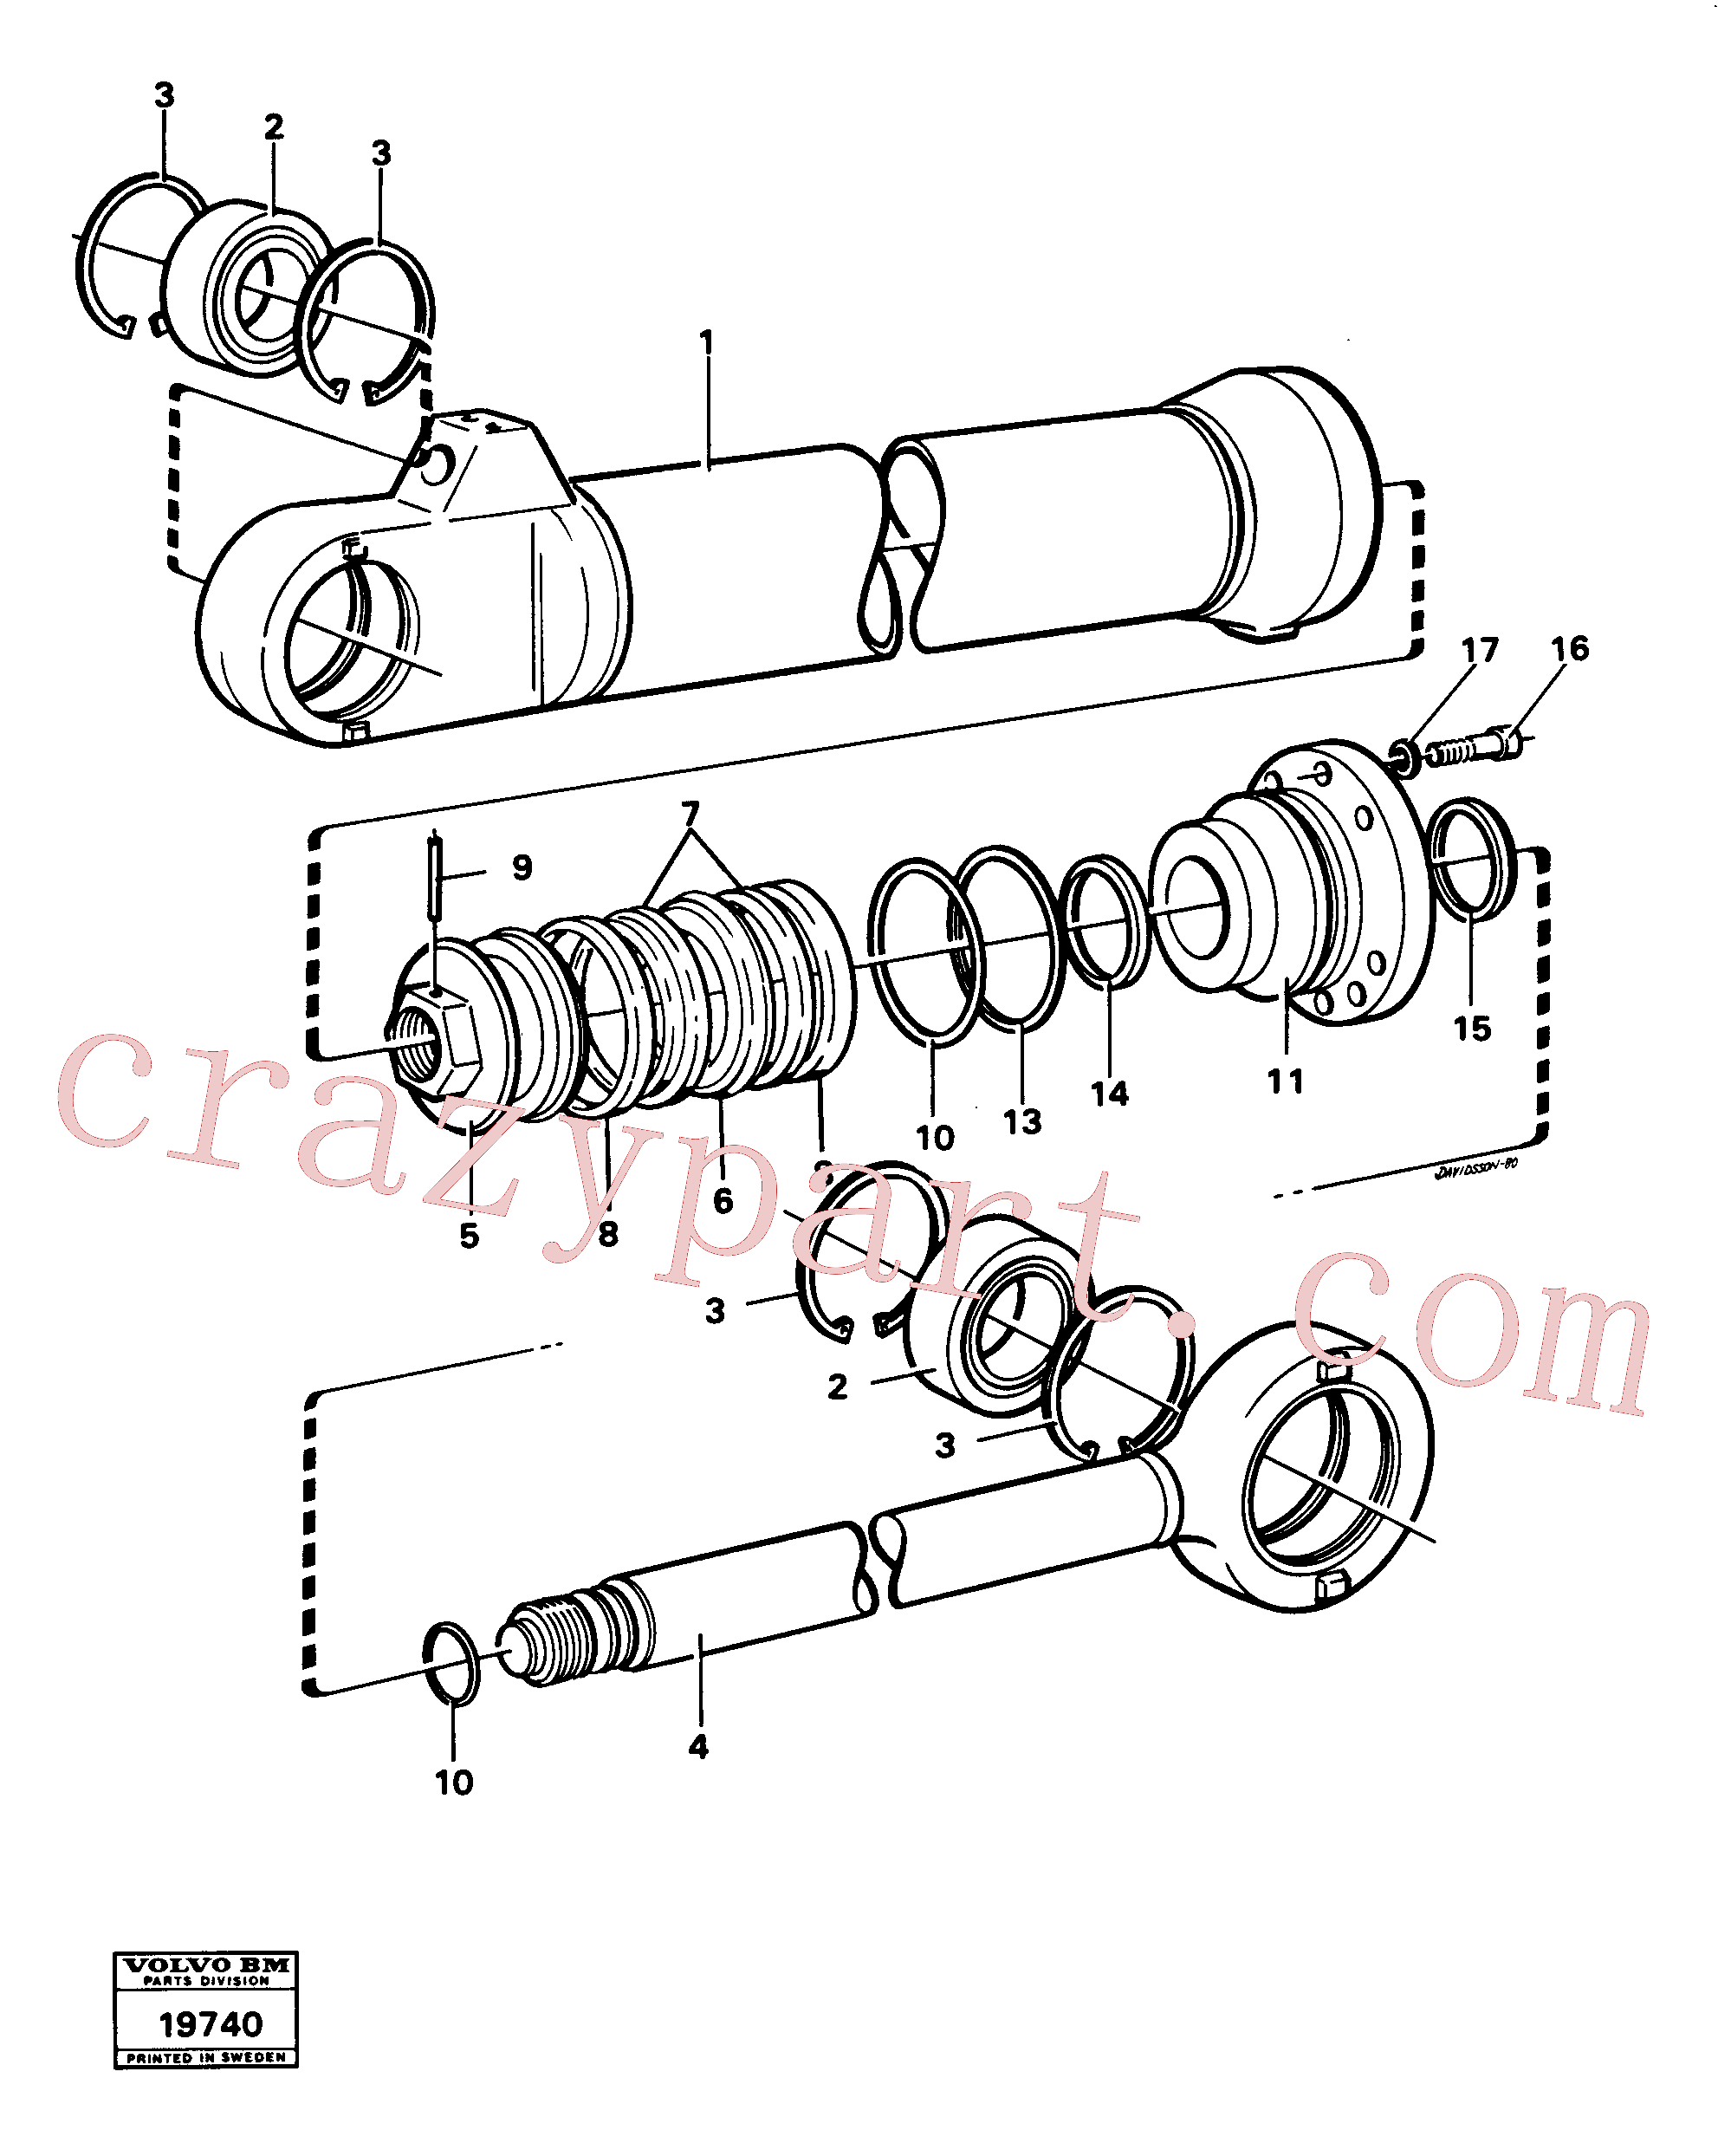 VOE4724499 for Volvo Hydraulic cylinder tilting(19740 assembly)